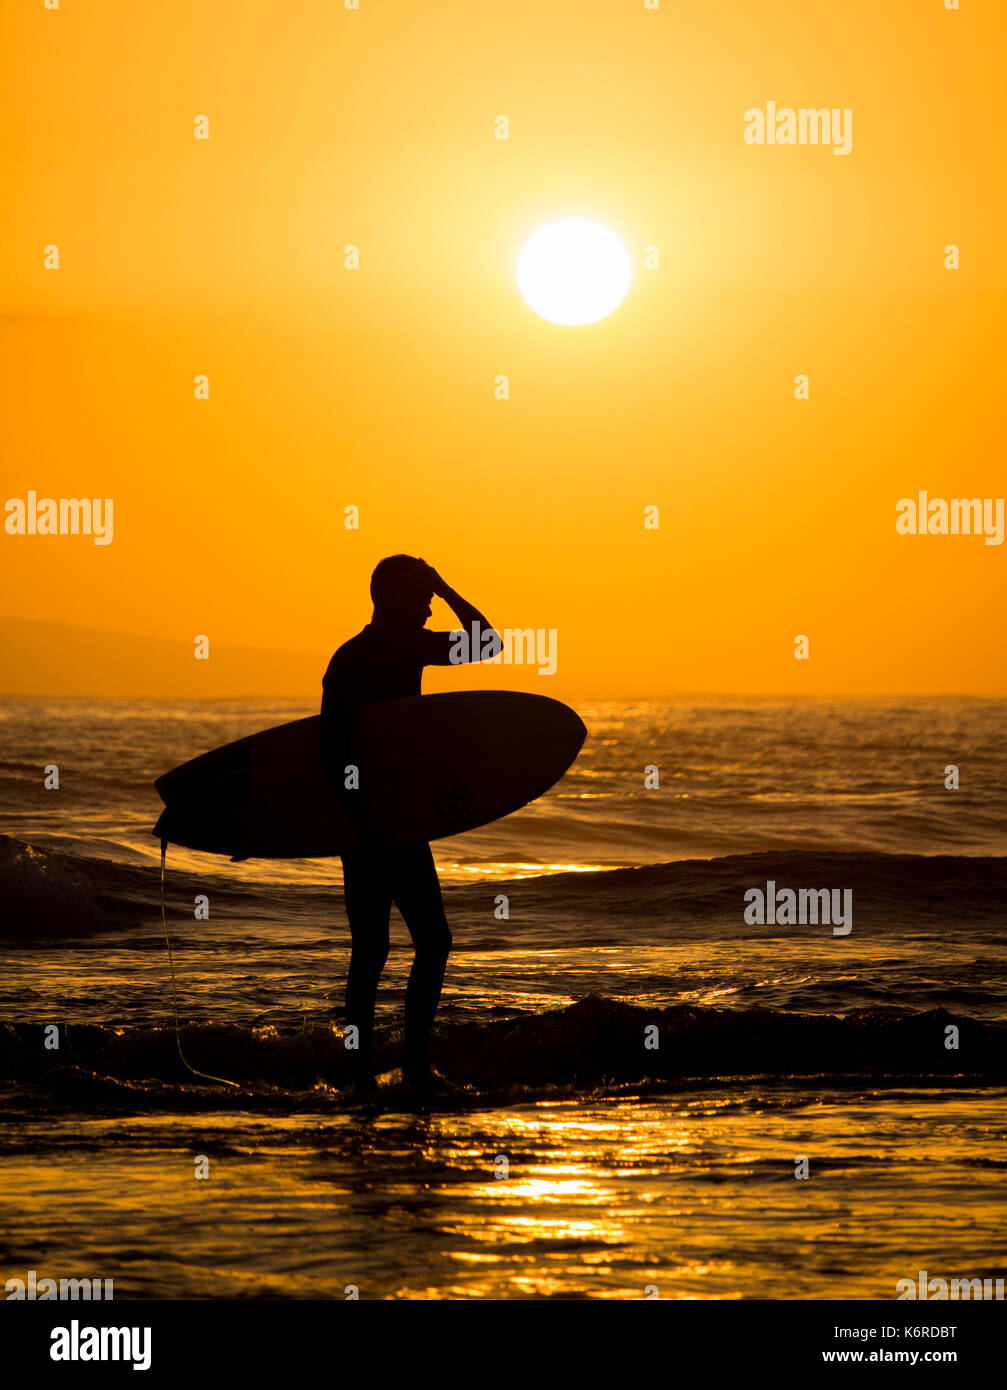 a6c48f1d8b Surfer at sunset Stock Photo  159096668 - Alamy